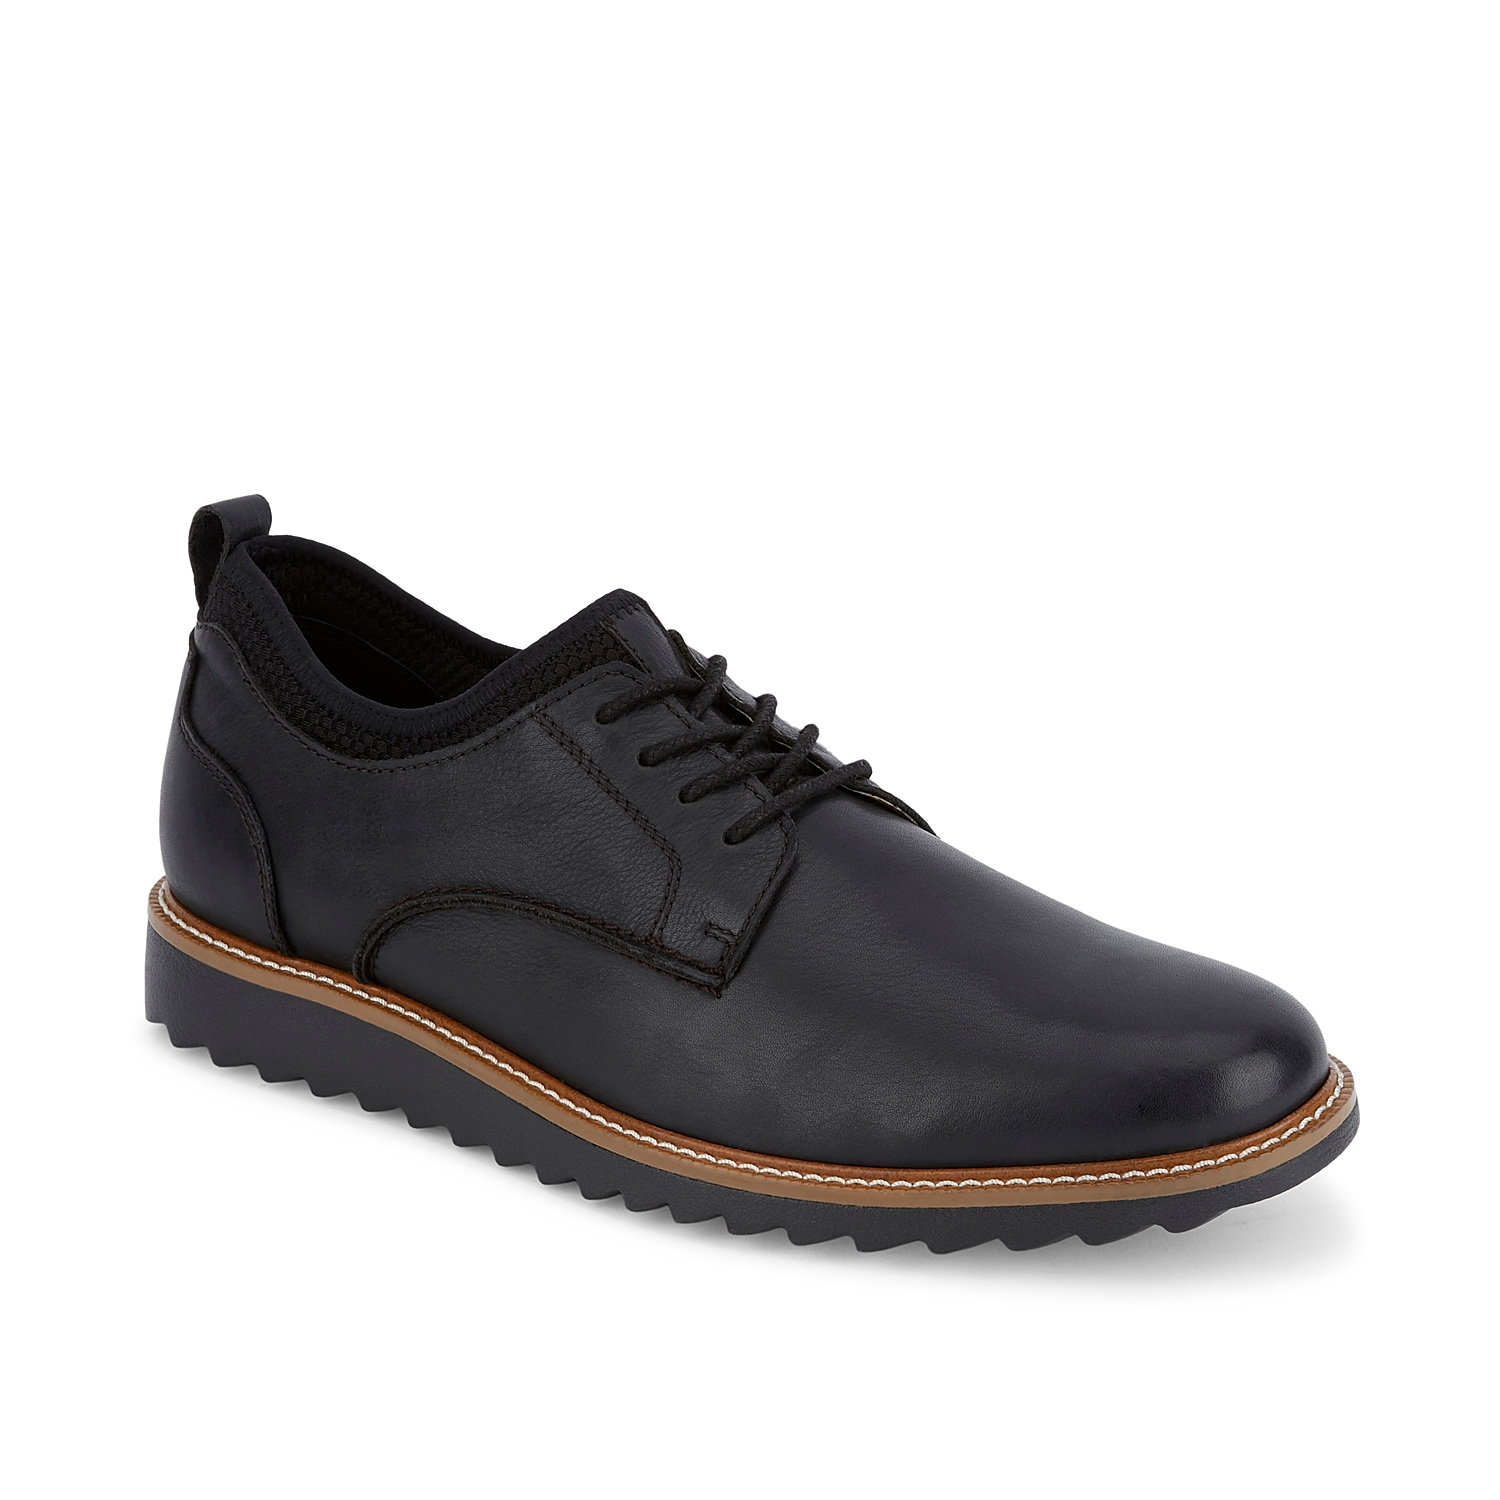 Look and feel your best in the Elon oxford from Dockers. These leather dress shoes feature NeverWet®technology to keep you dry and are finished with a high-rebound footbed for lasting comfort.